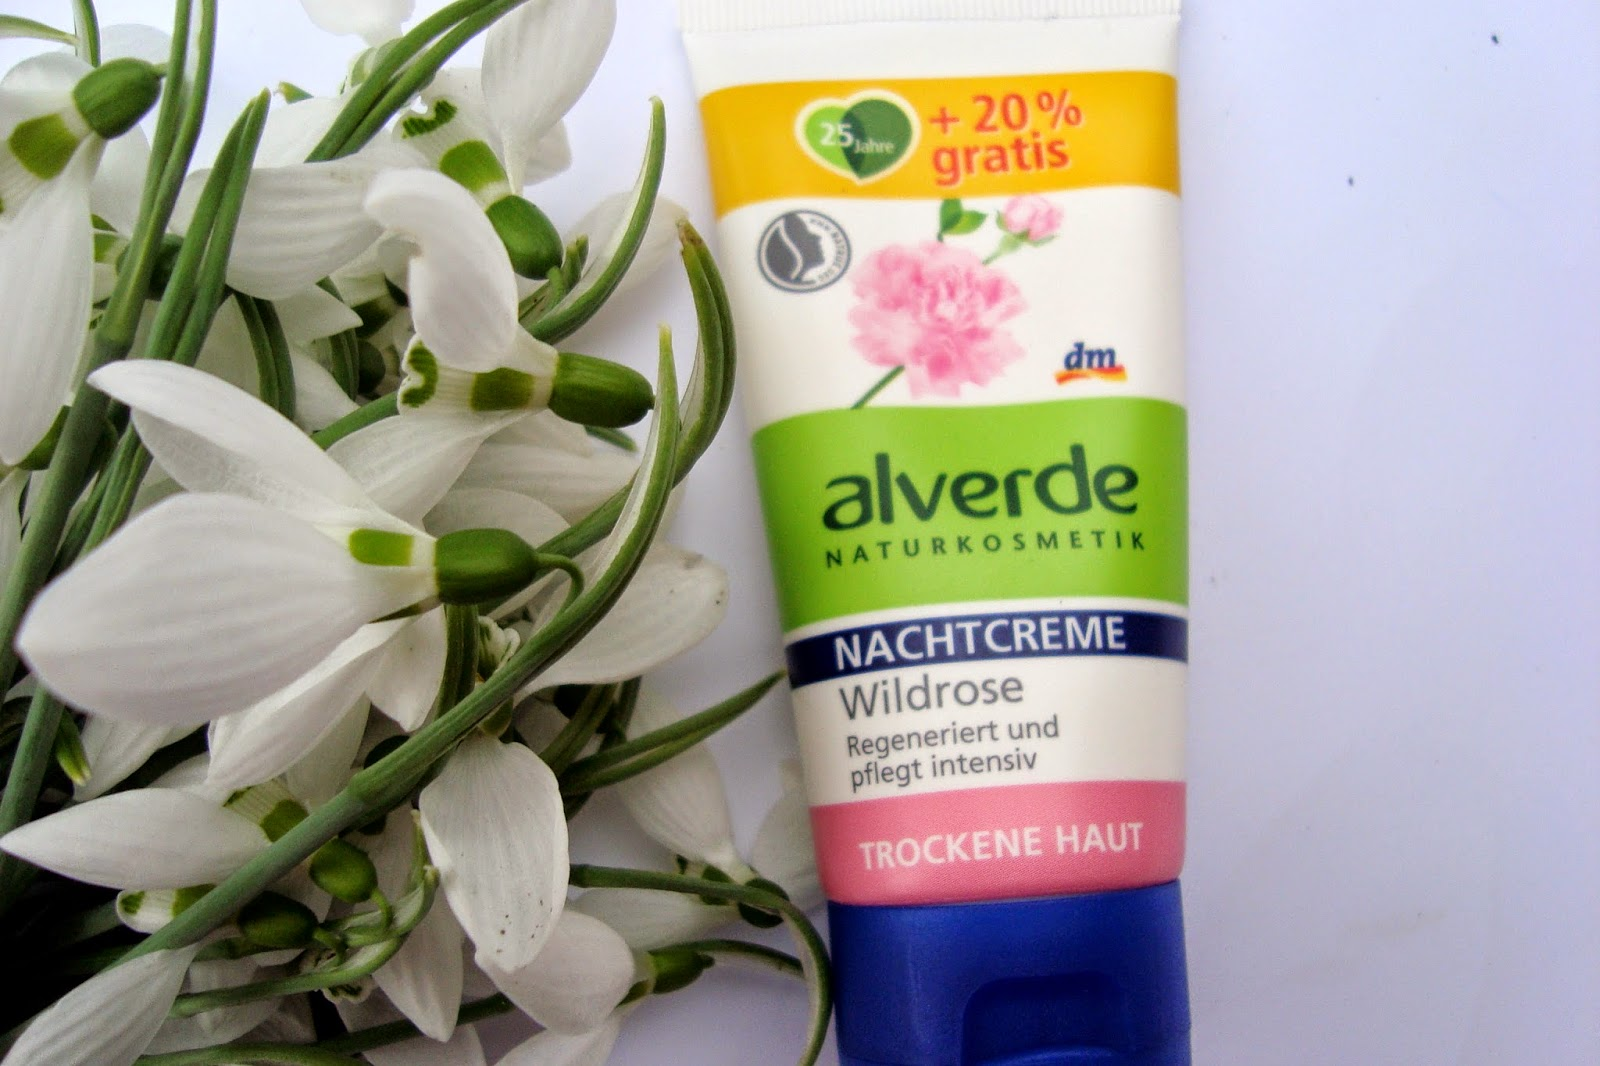 Alverde Nachtcreme Wildrose review